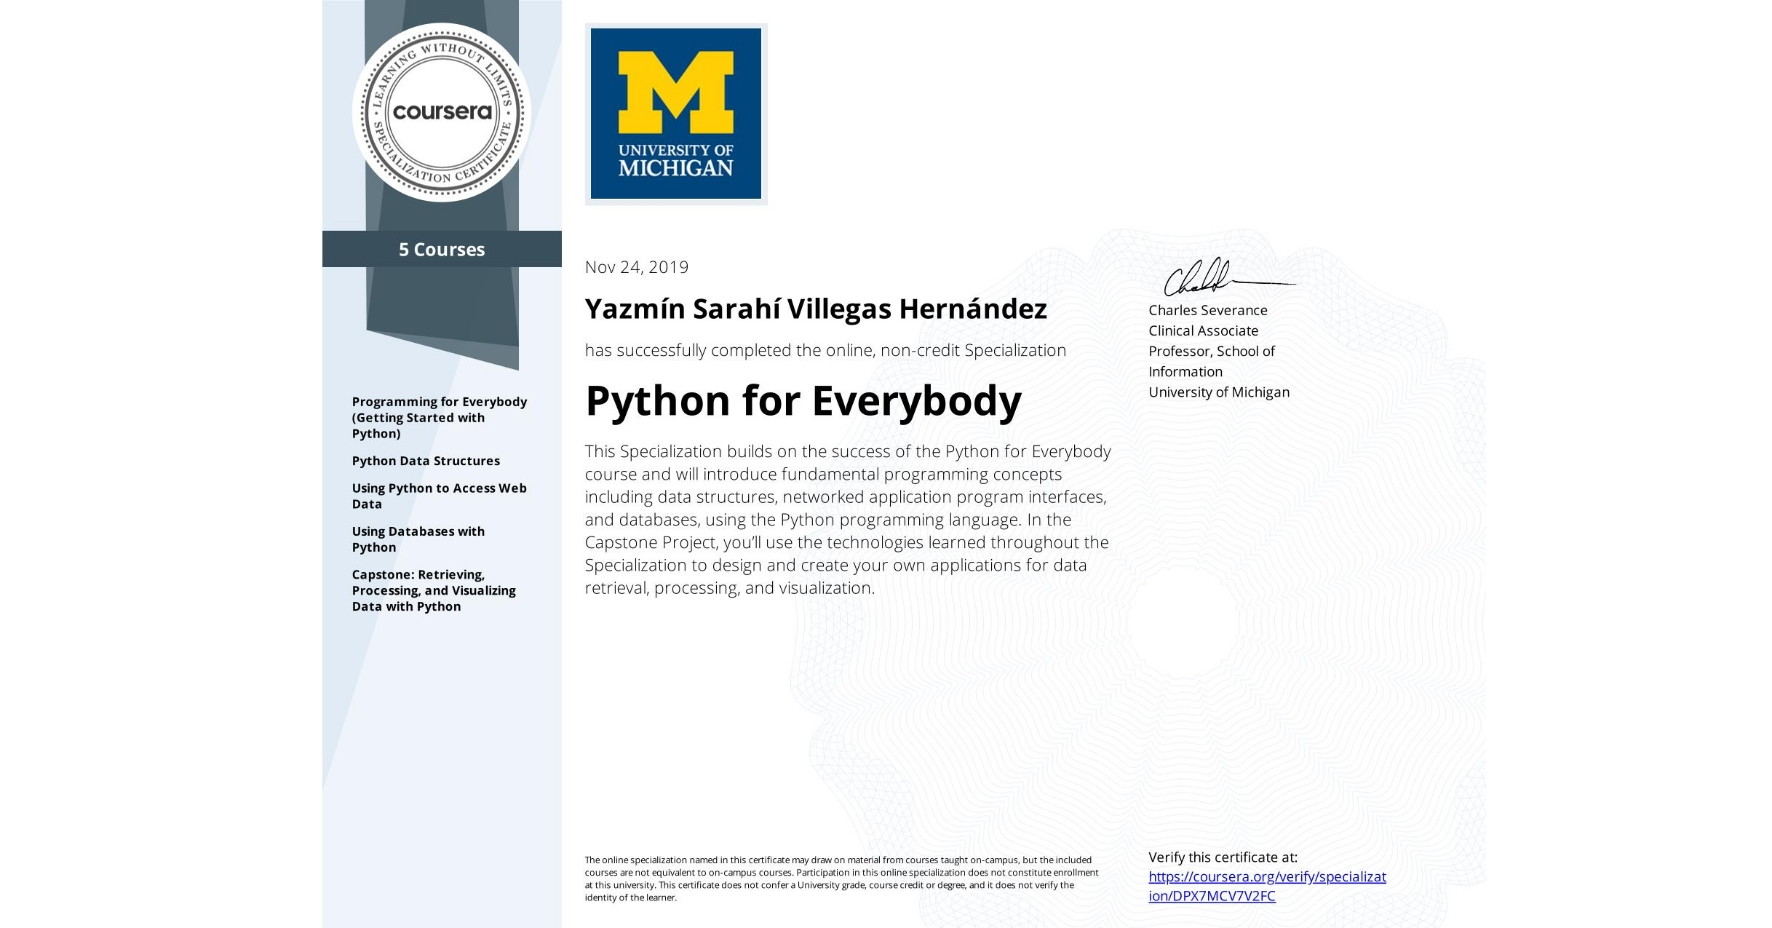 View certificate for Yazmín Sarahí Villegas Hernández, Python for Everybody, offered through Coursera. This Specialization builds on the success of the Python for Everybody course and will introduce fundamental programming concepts including data structures, networked application program interfaces, and databases, using the Python programming language. In the Capstone Project, you'll use the technologies learned throughout the Specialization to design and create your own applications for data retrieval, processing, and visualization.